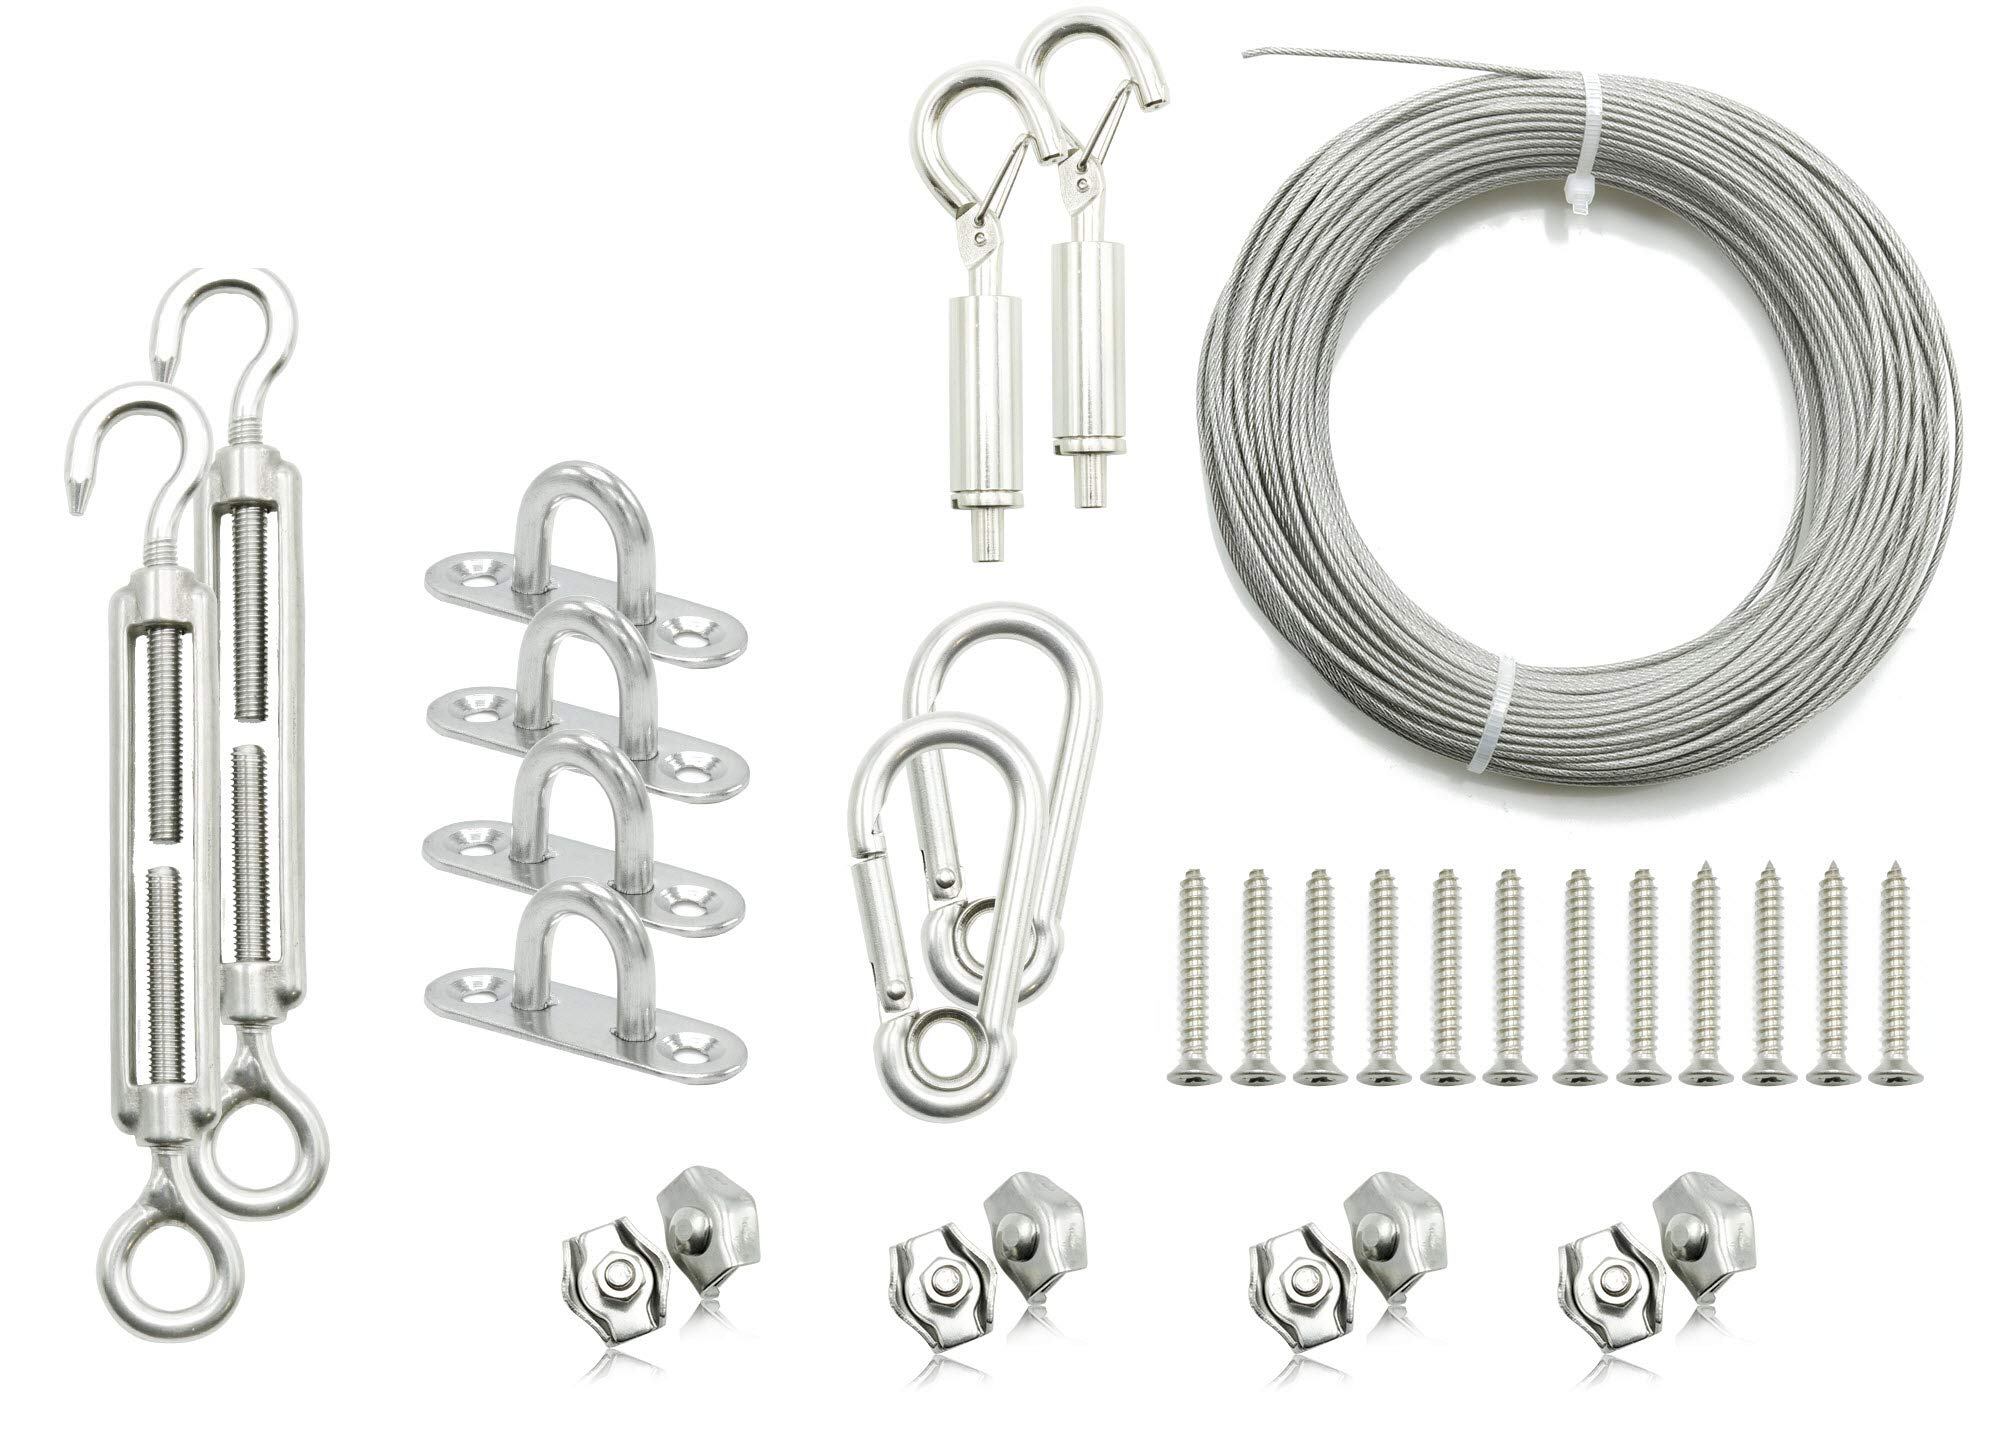 Lofty Fair Stainless Steel String Globe Light Suspension Kit, Outdoor Light Guide Wire Hanging Kit 110 ft. with Turnbuckles and Hooks - Free 2 Pieces Gripper & 4 Pieces Screws